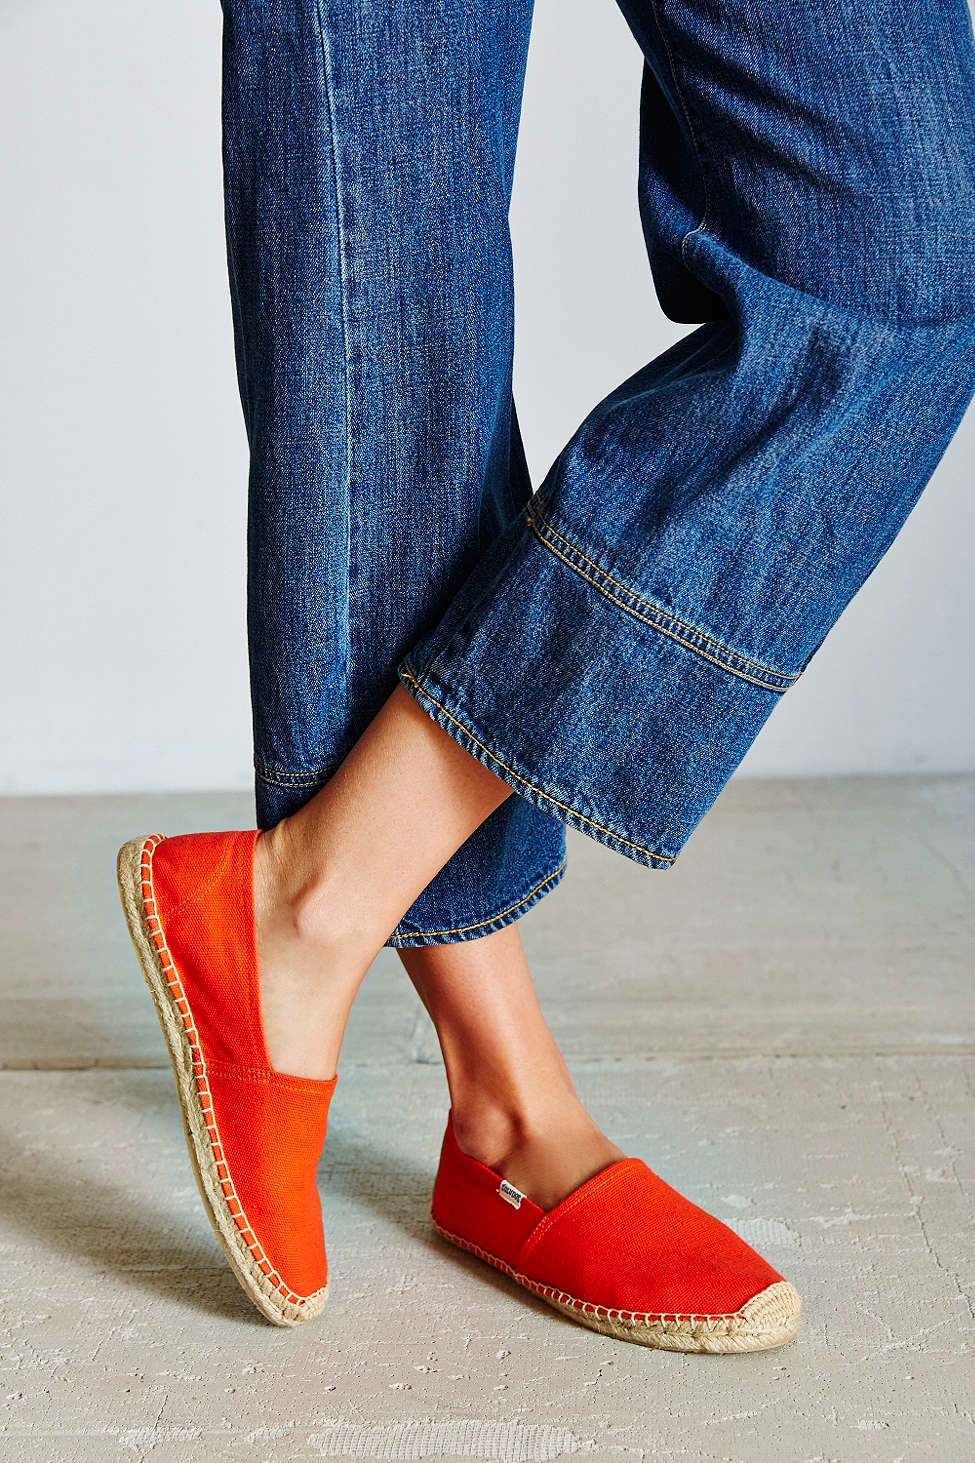 4d13b580d3e Lyst - Soludos Dali Espadrille Slip-on Shoe in Red